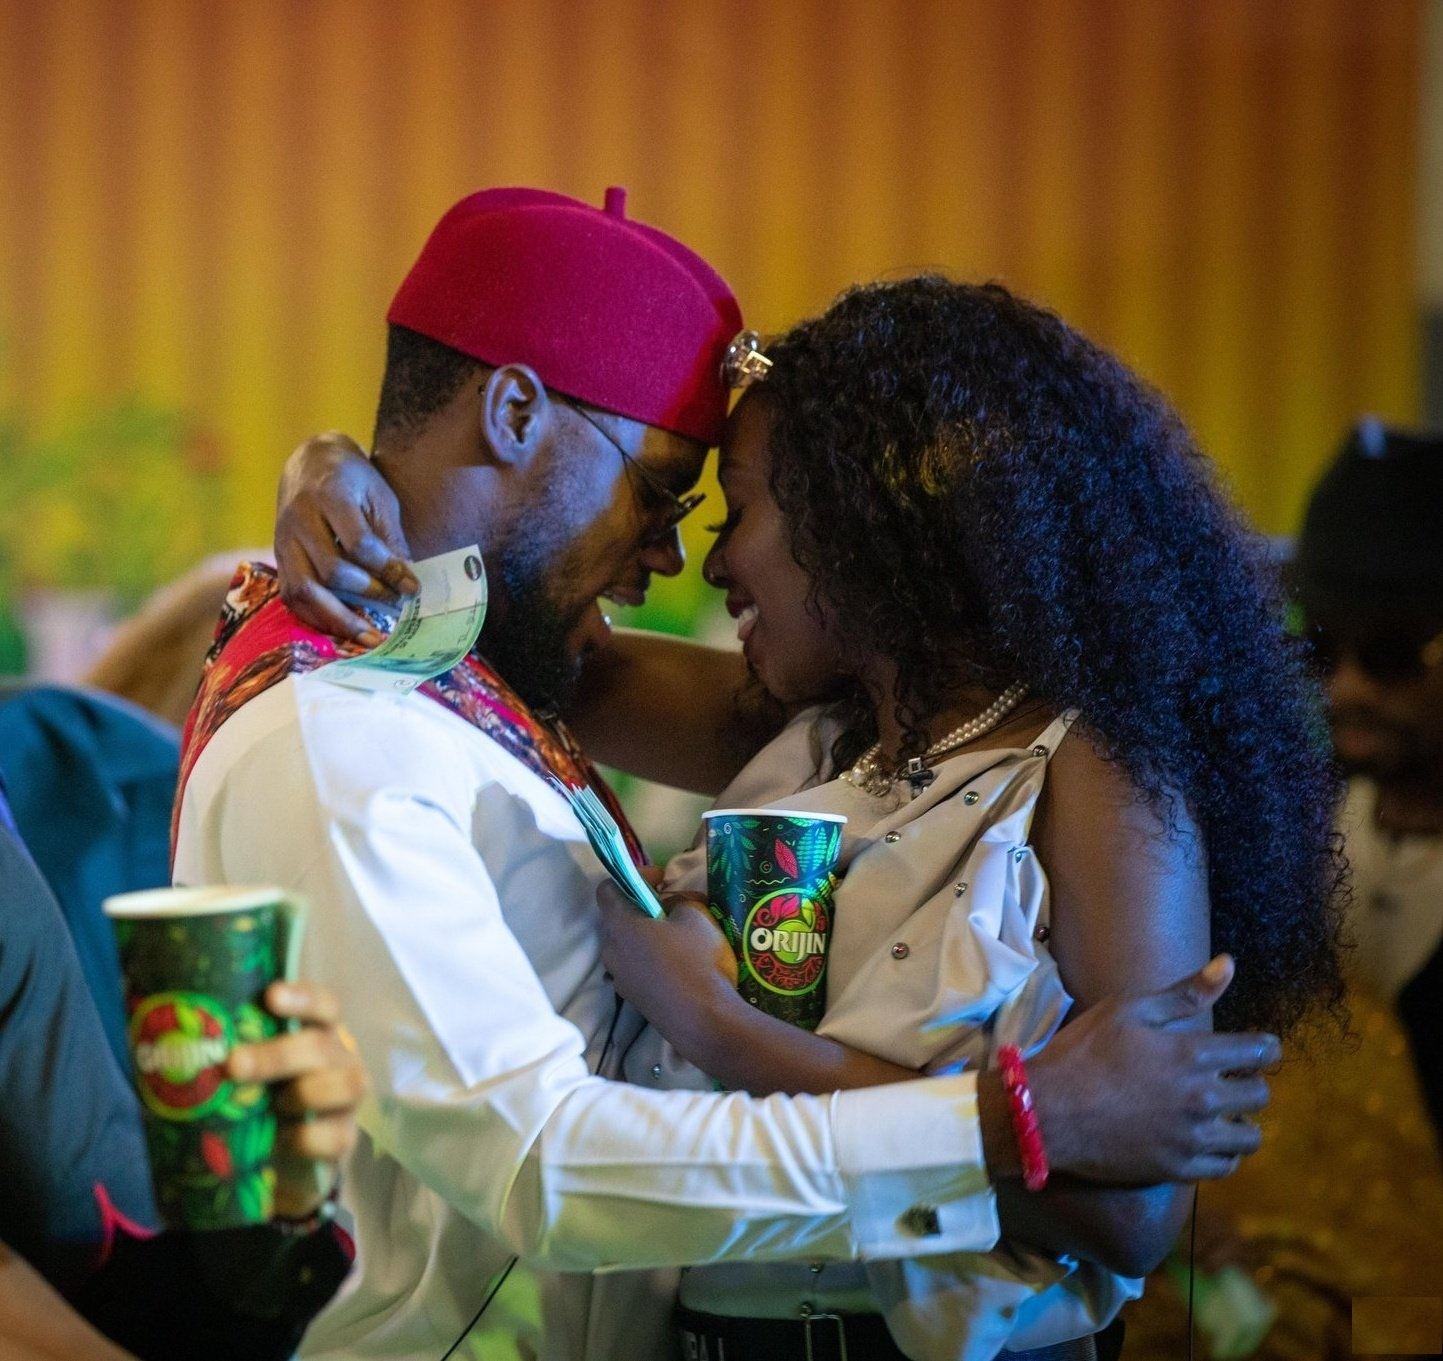 BBNAIJA UPDATE: 'I Don't Want To Have S*x On National TV' – Prince To Tolanibaj (VIDEO)